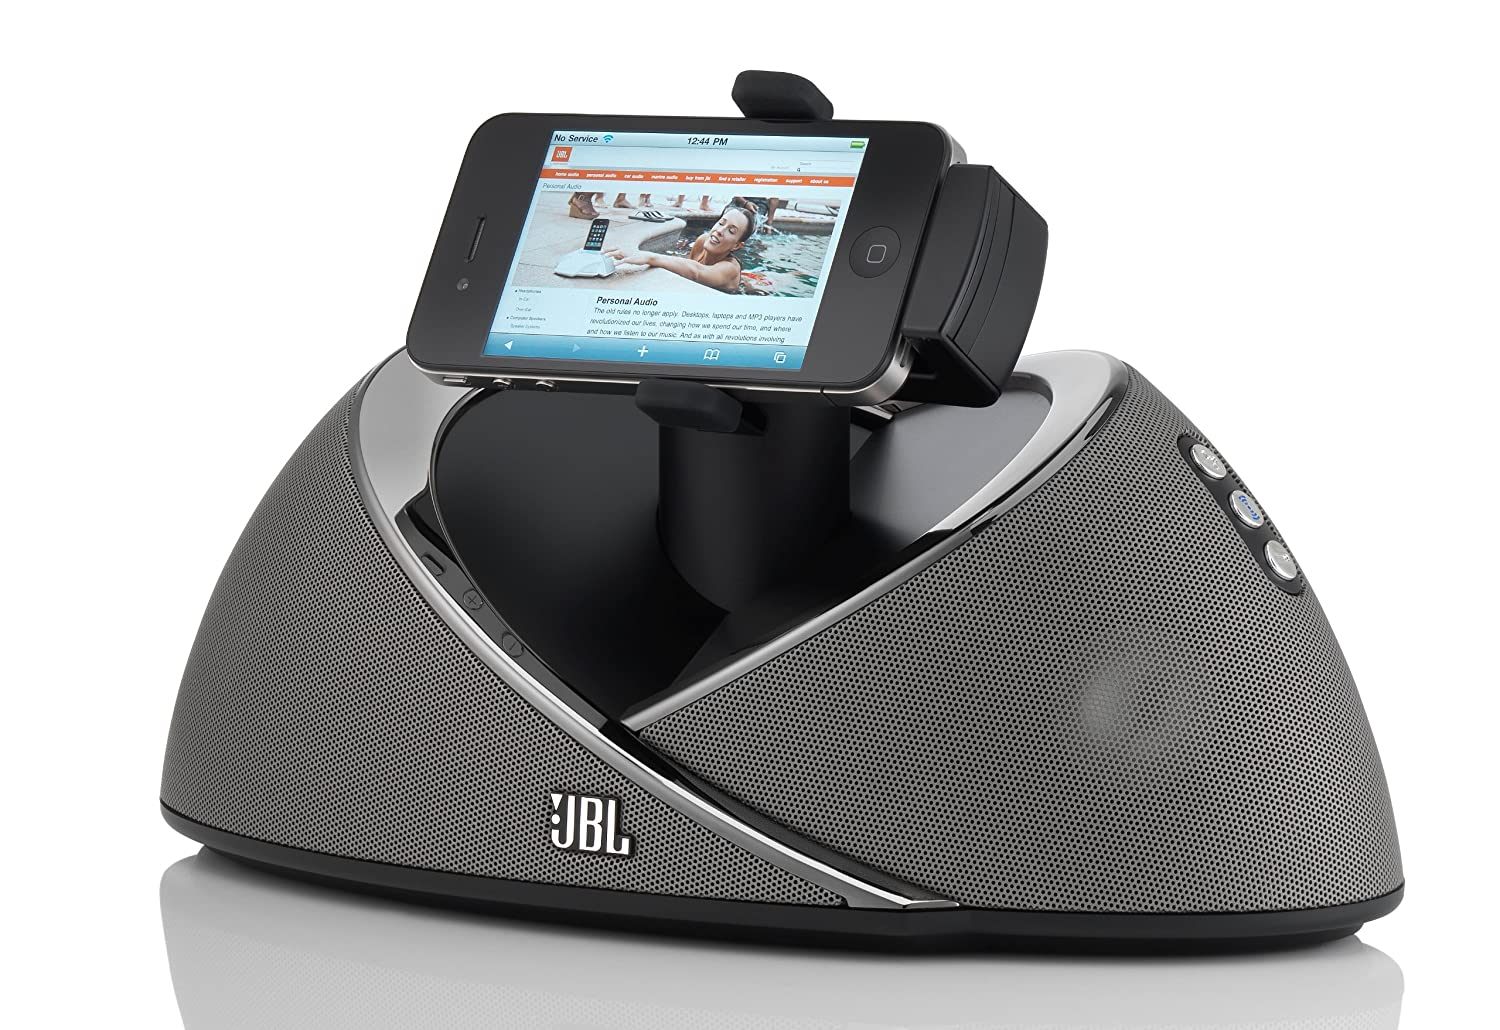 jbl iphone speaker. Amazon.com: JBL OnBeat Air IPad/iPod/iPhone Speaker Dock With AirPlay (Discontinued By Manufacturer): Home Audio \u0026 Theater Jbl Iphone R